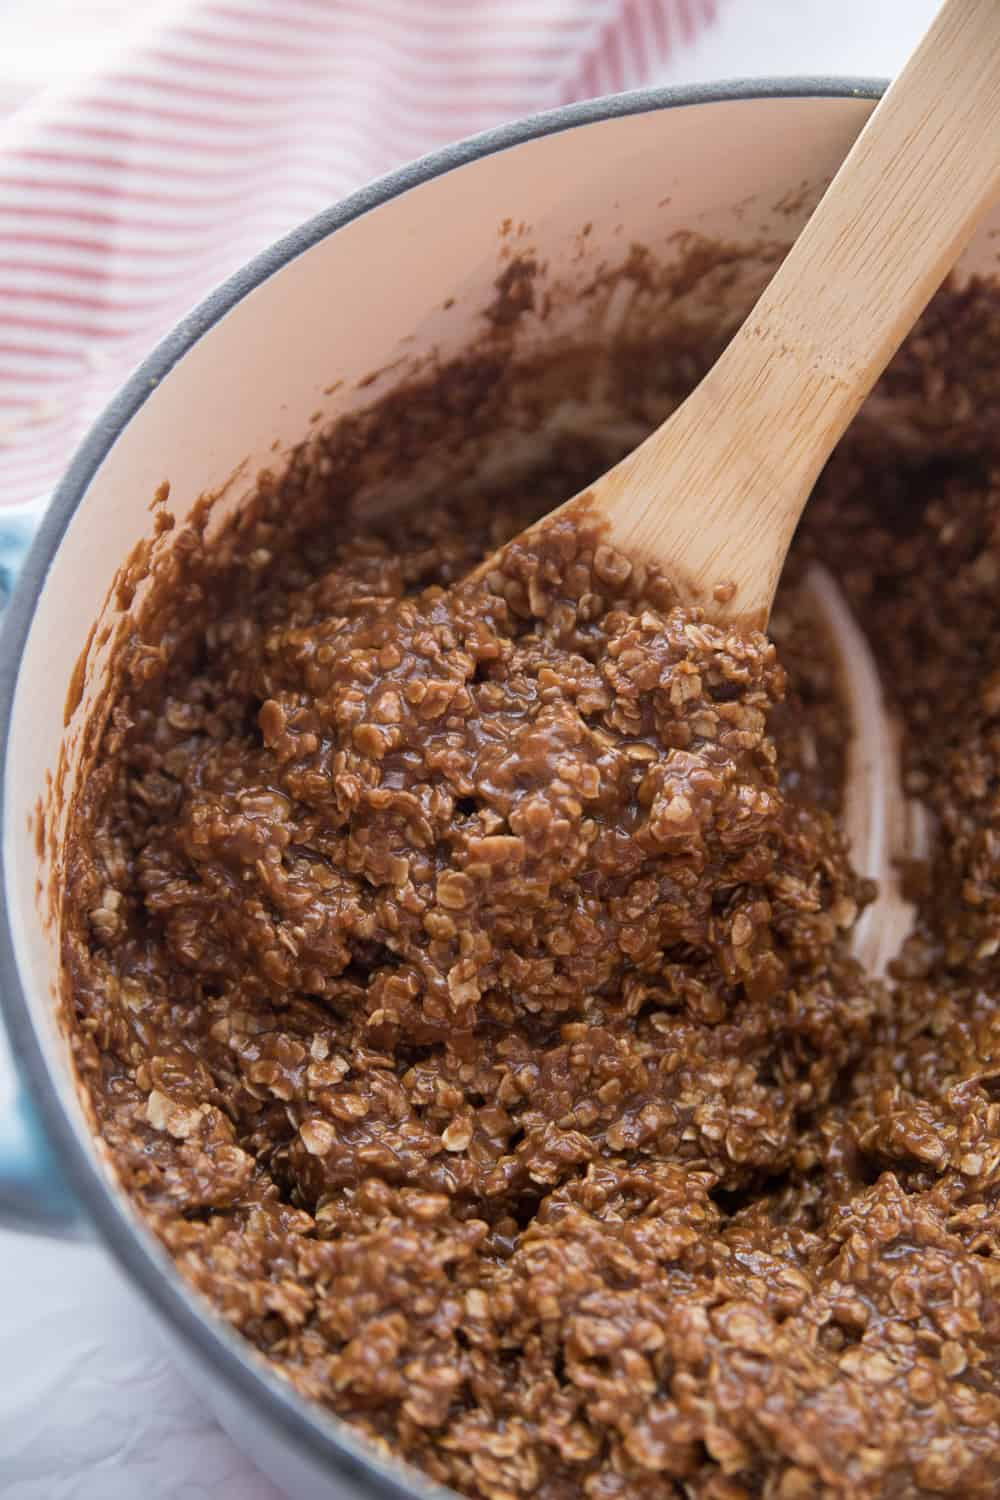 Now oats have been added to the no bake cookie stovetop mixture.